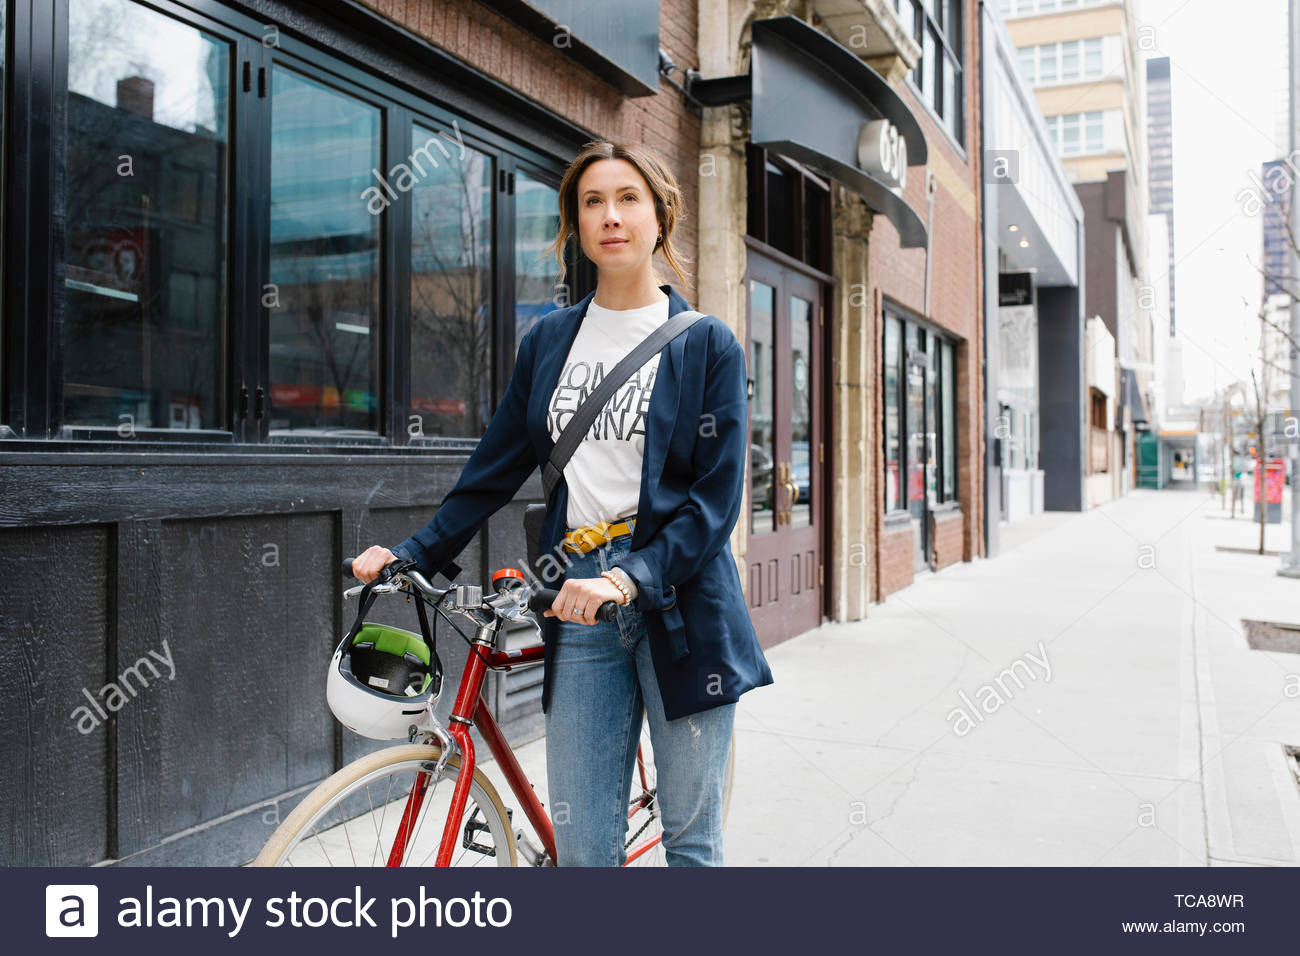 Confident woman walking with bicycle on urban sidewalk - Stock Image